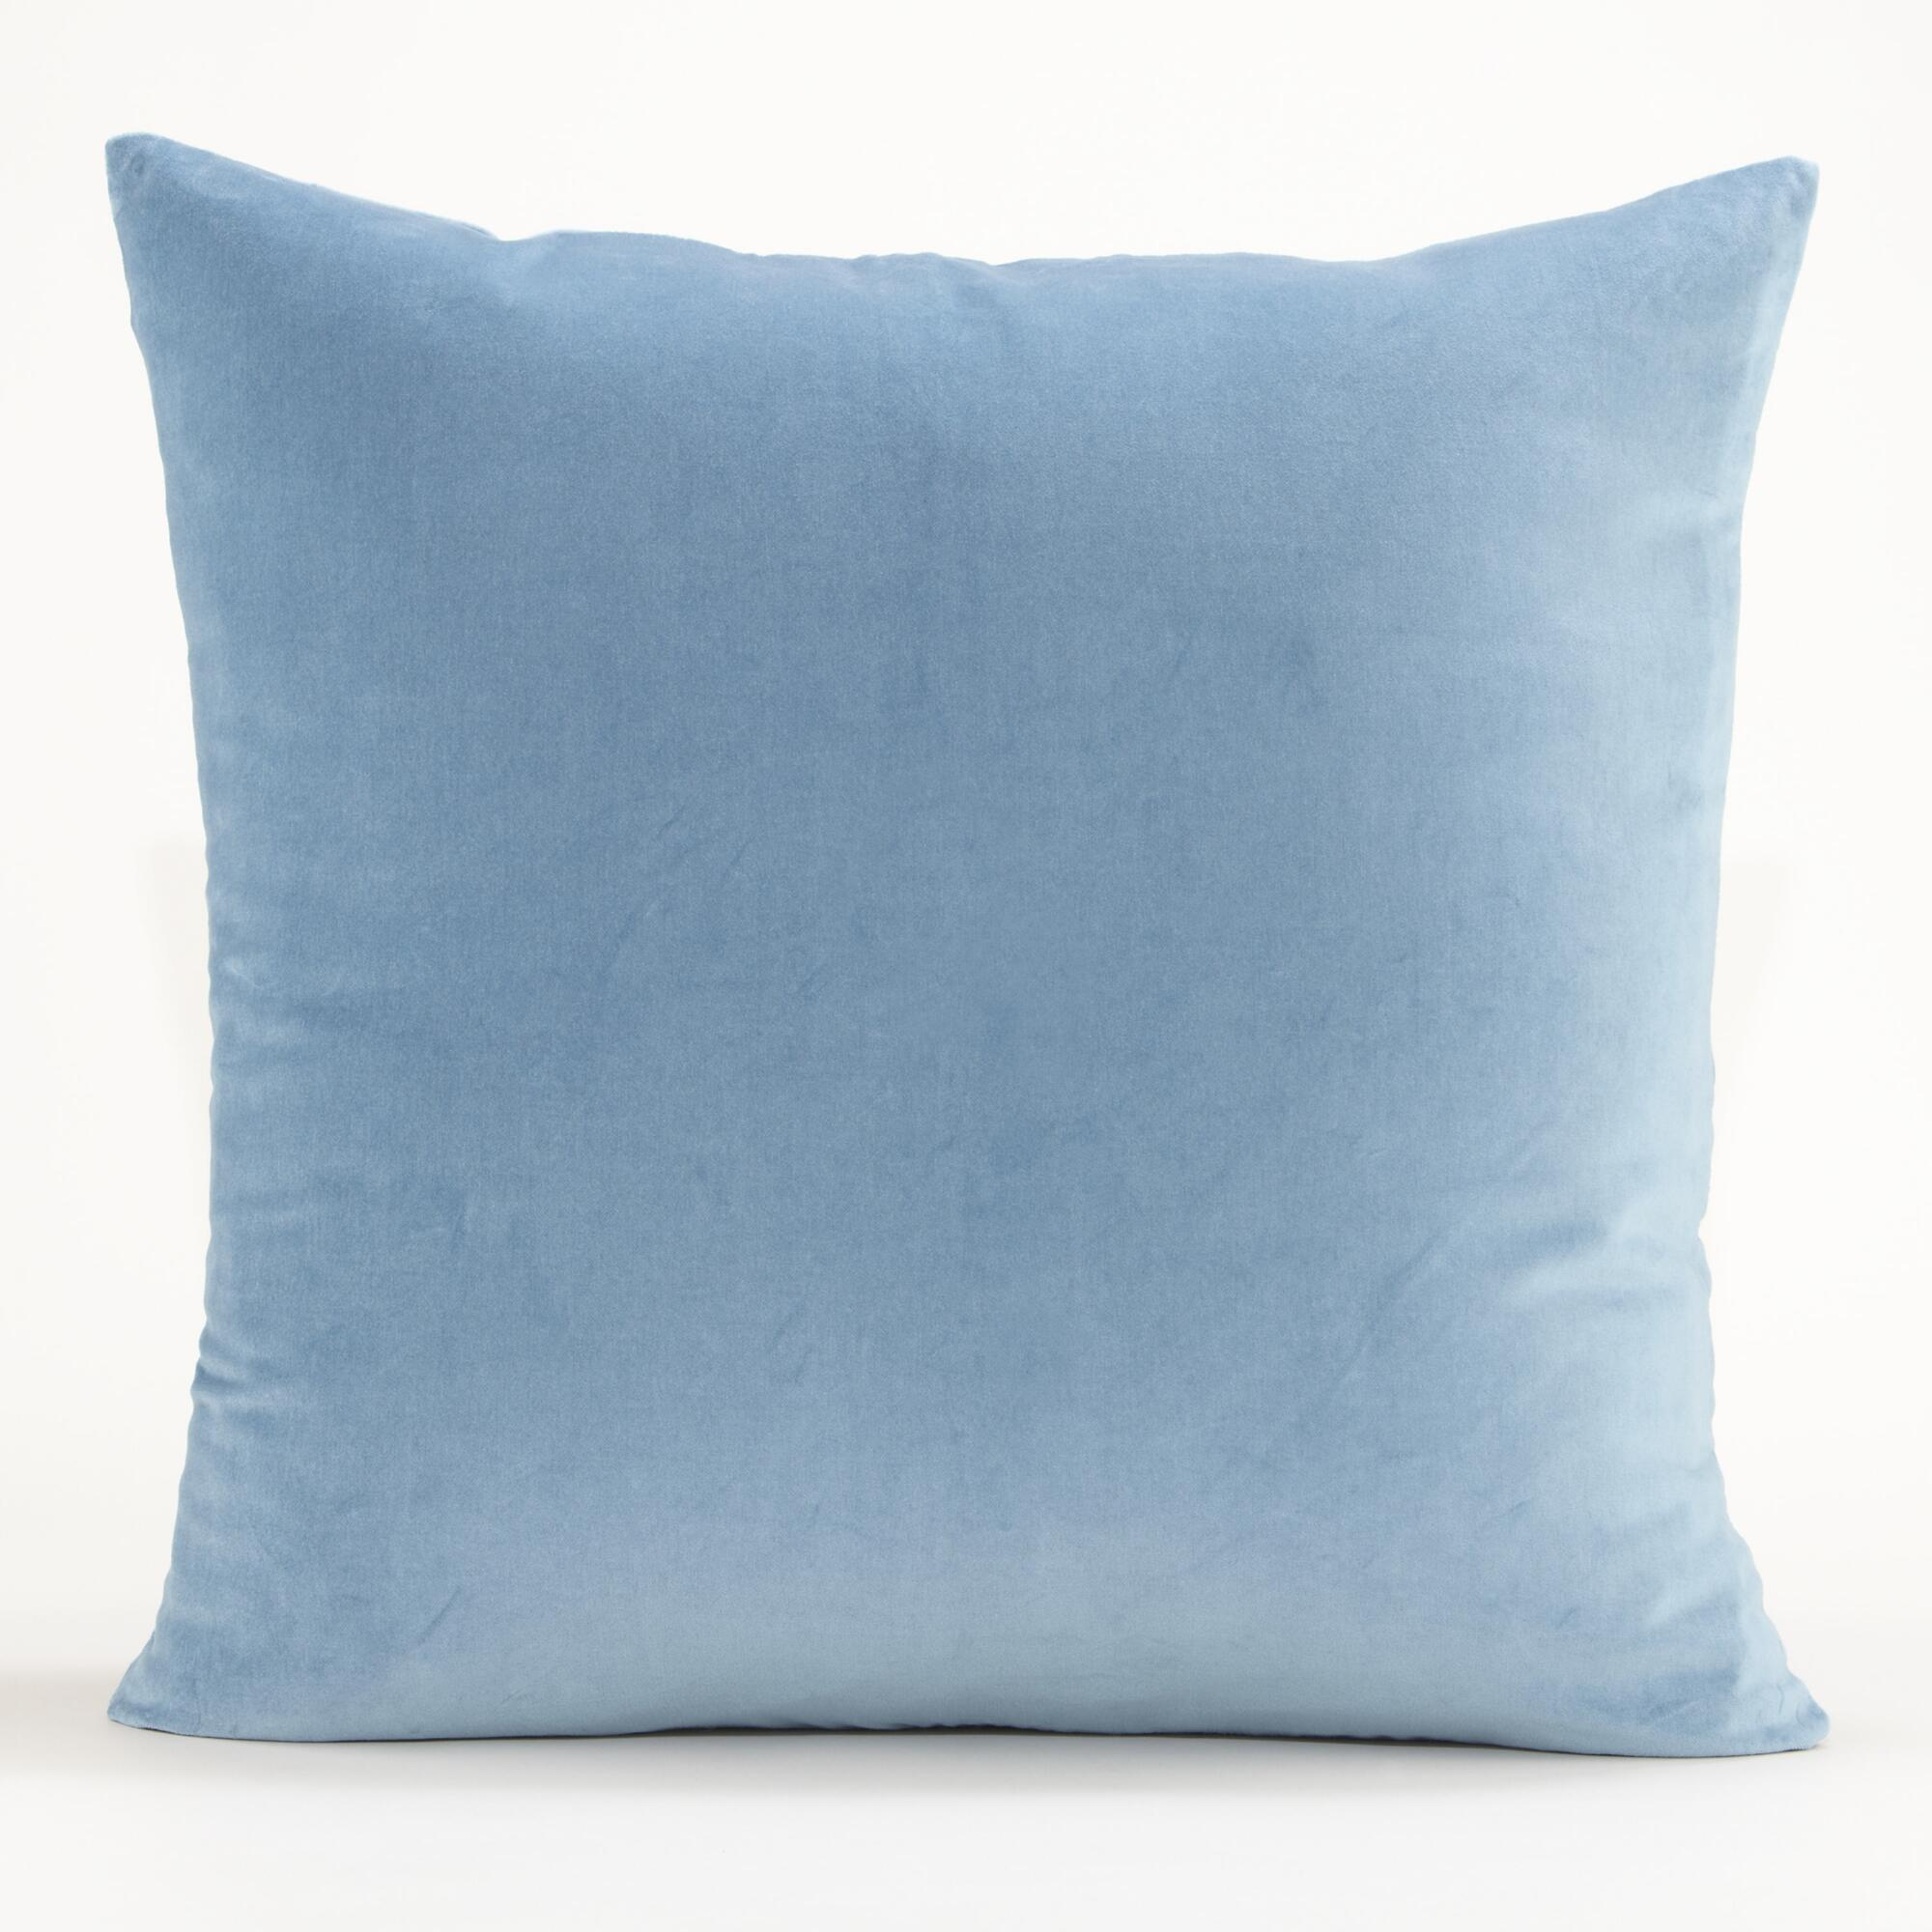 Blue Down Throw Pillows : Blue Throw Pillows For Couch